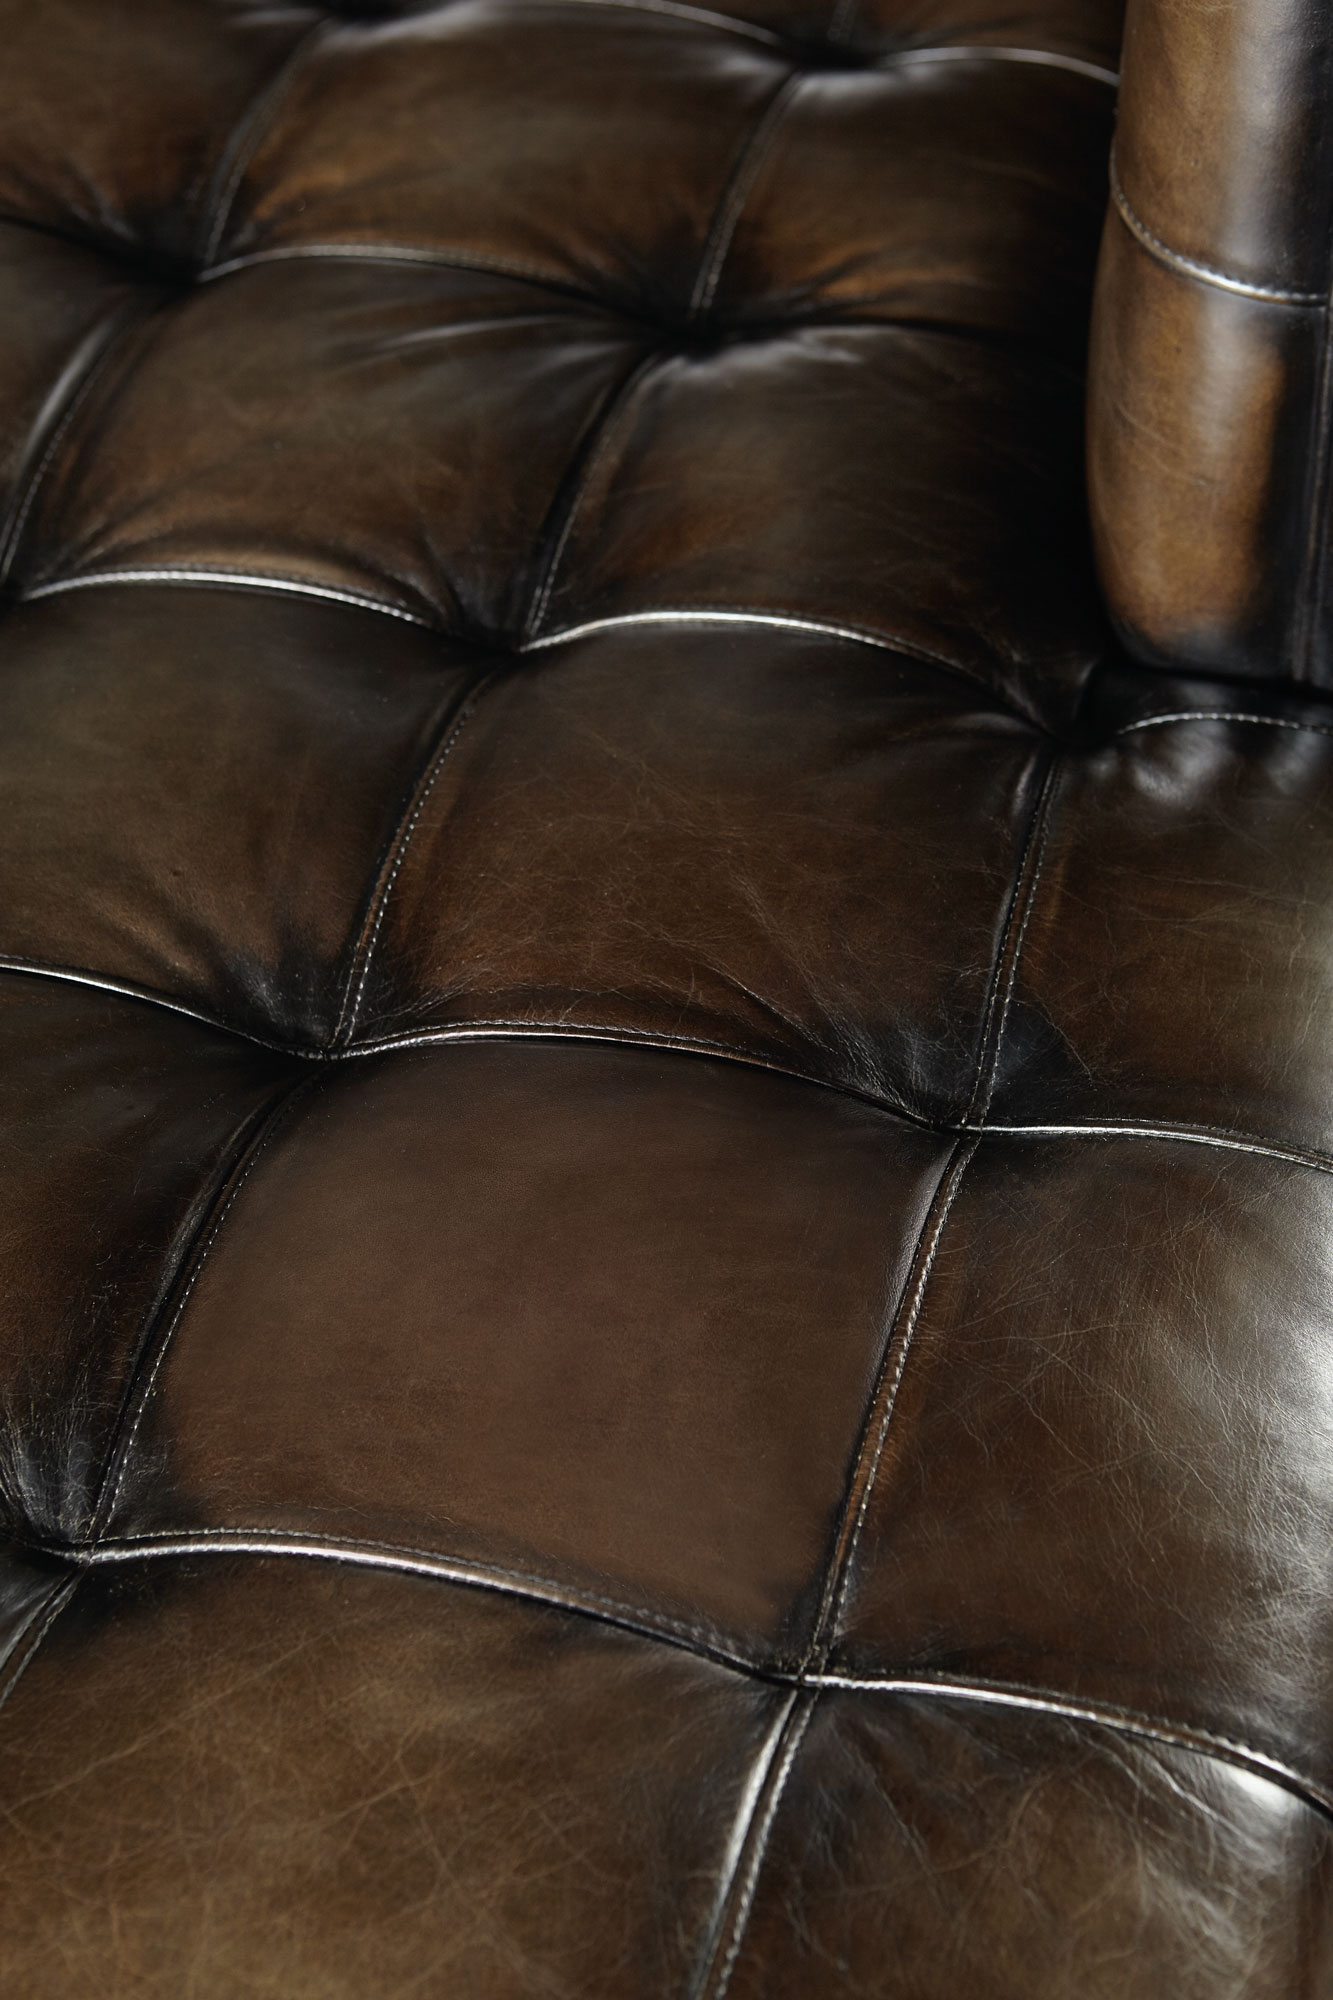 Dunhill Leather Sofa: Bernhardt Dunhill Leather Sectional